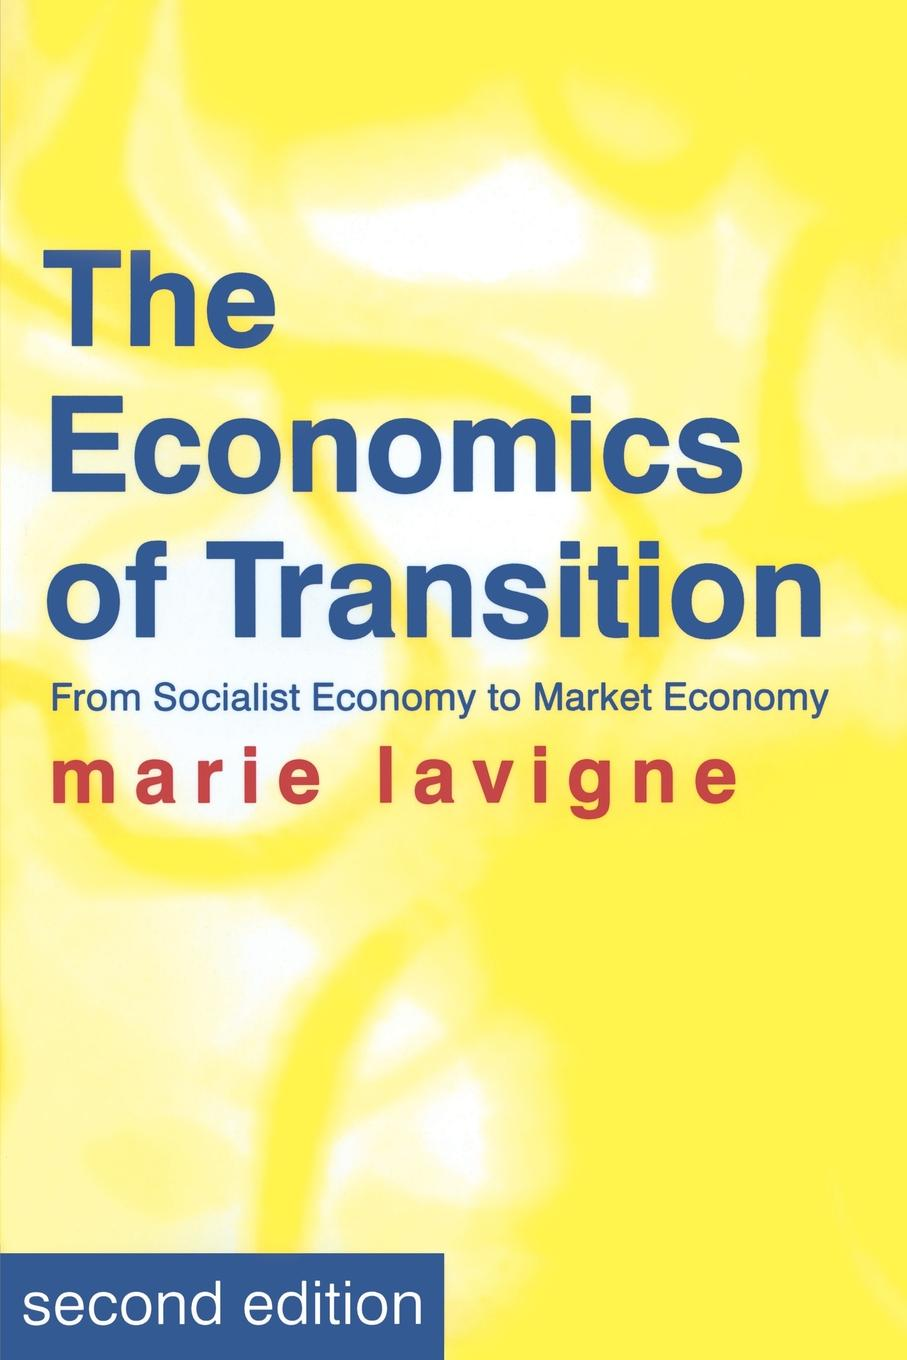 Marie Lavigne The Economics of Transition. From Socialist Economy to Market Economy yogesh sharma c a guide to the economic removal of metals from aqueous solutions